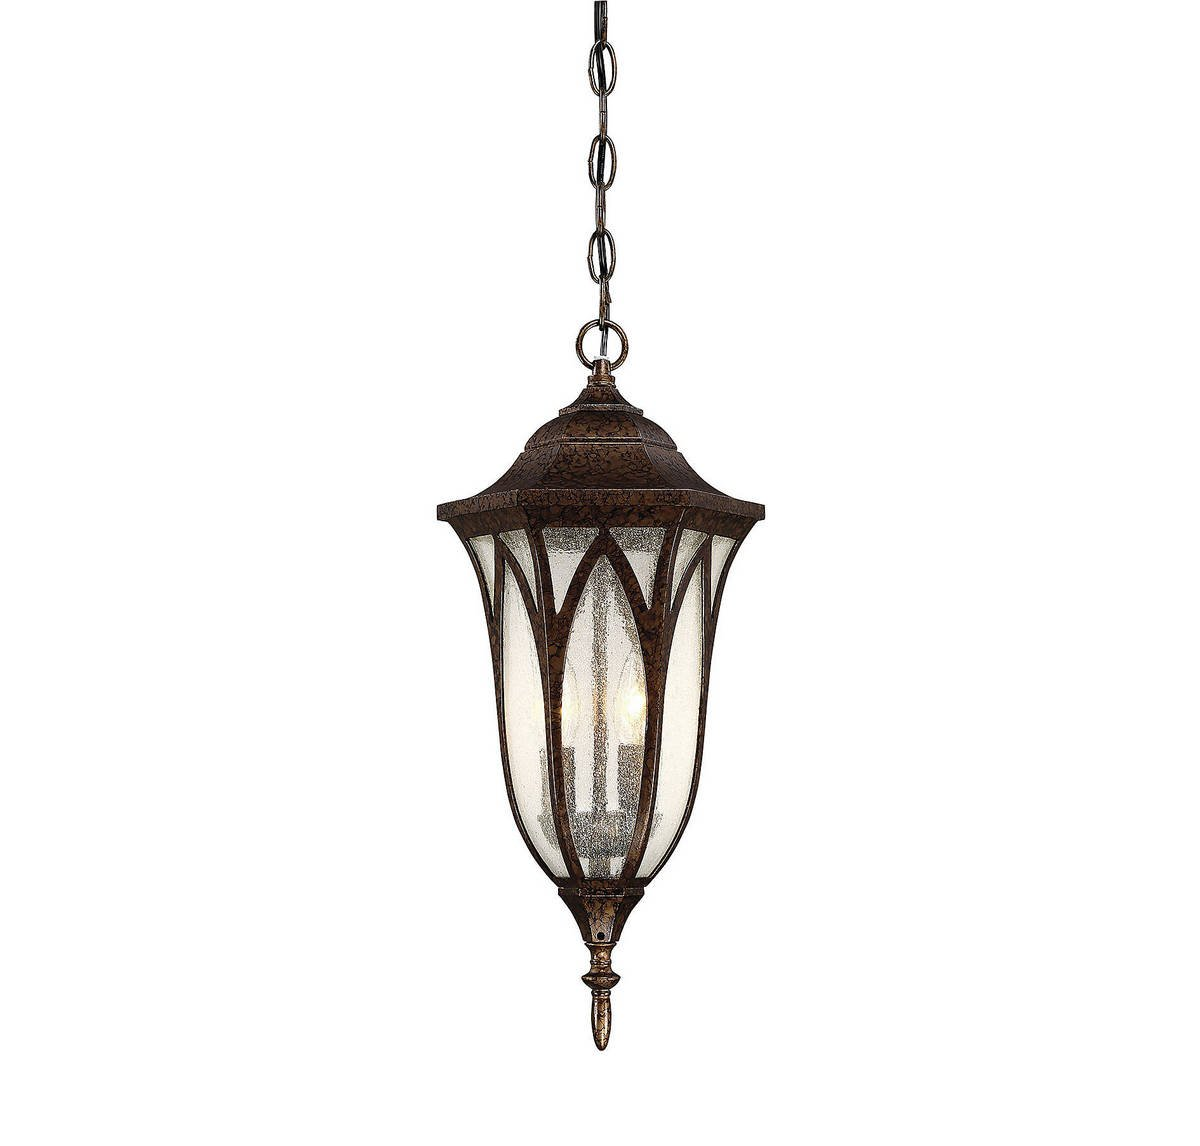 Savoy House 5-1242-56 Dayton Outdoor Hanging Lantern in New Tortoise Shell by Savoy House